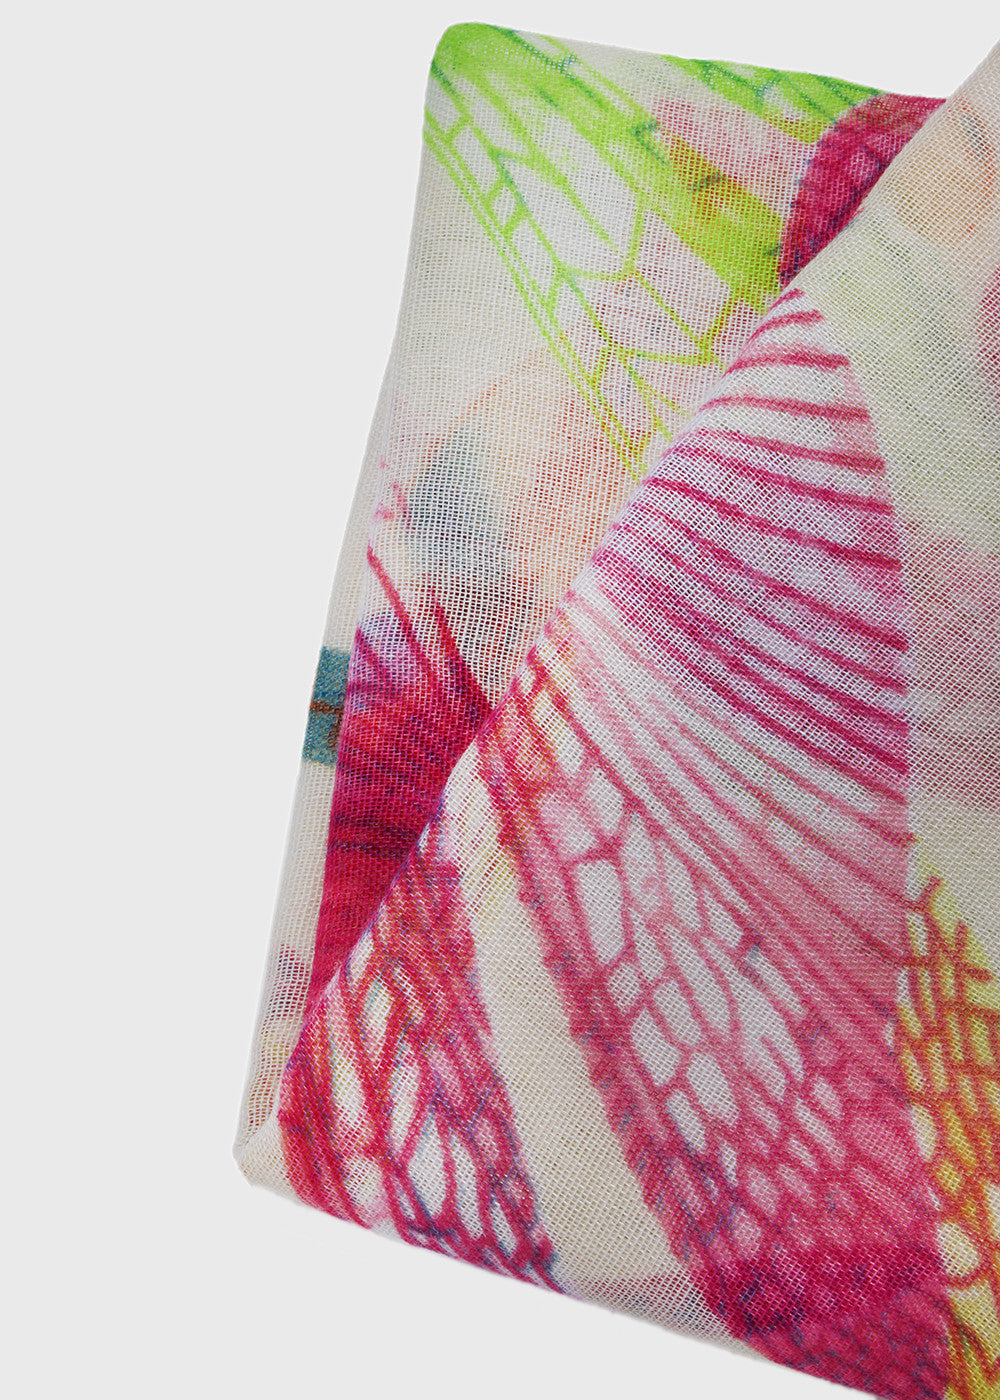 Lightweight Dragonfly Scarf- White/Pink